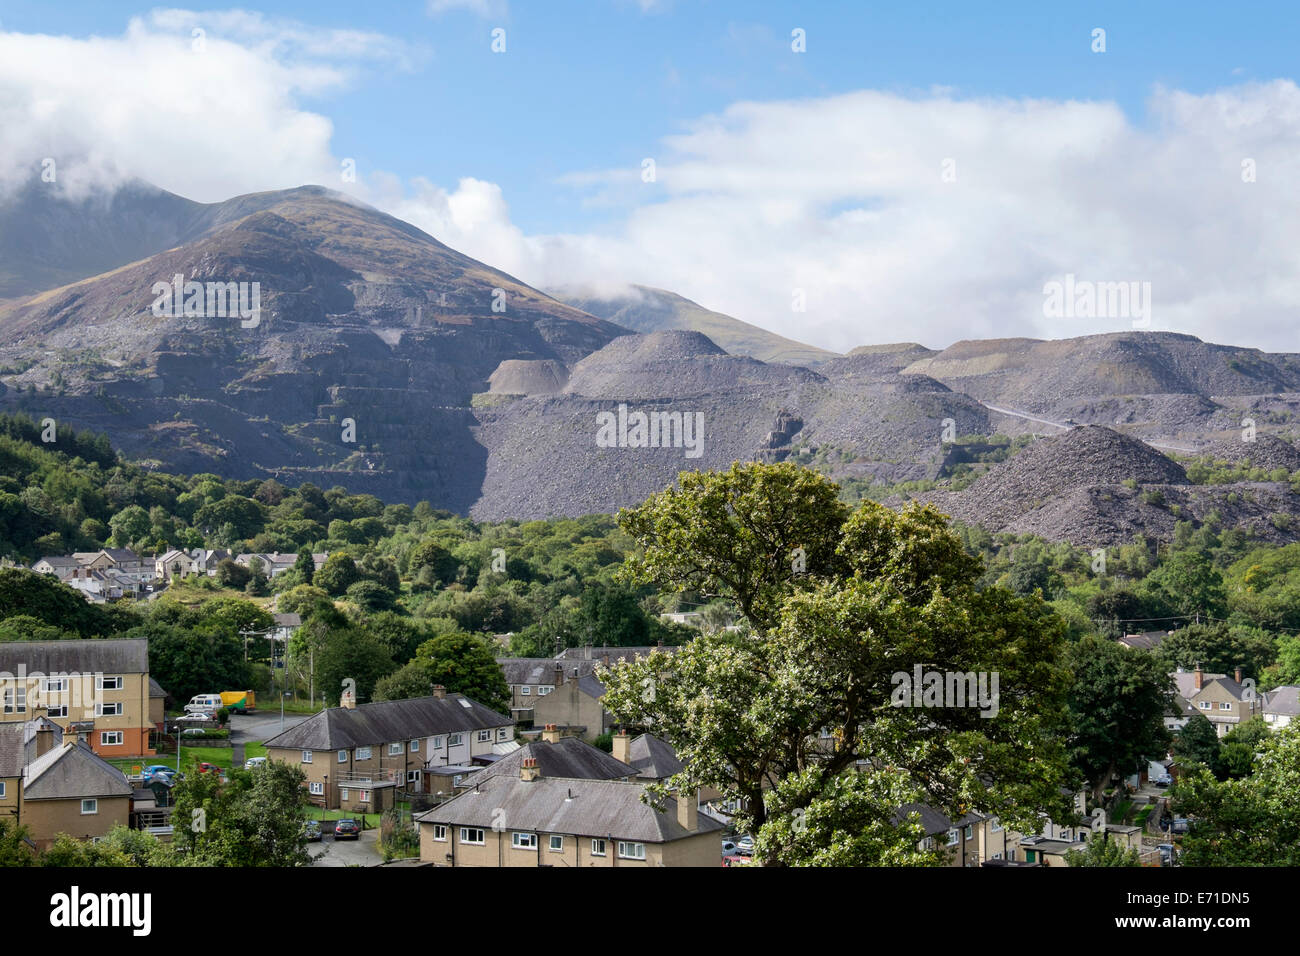 Industrial landscape with Penrhyn slate quarry and spoil heaps above houses in town on edge of Snowdonia National - Stock Image